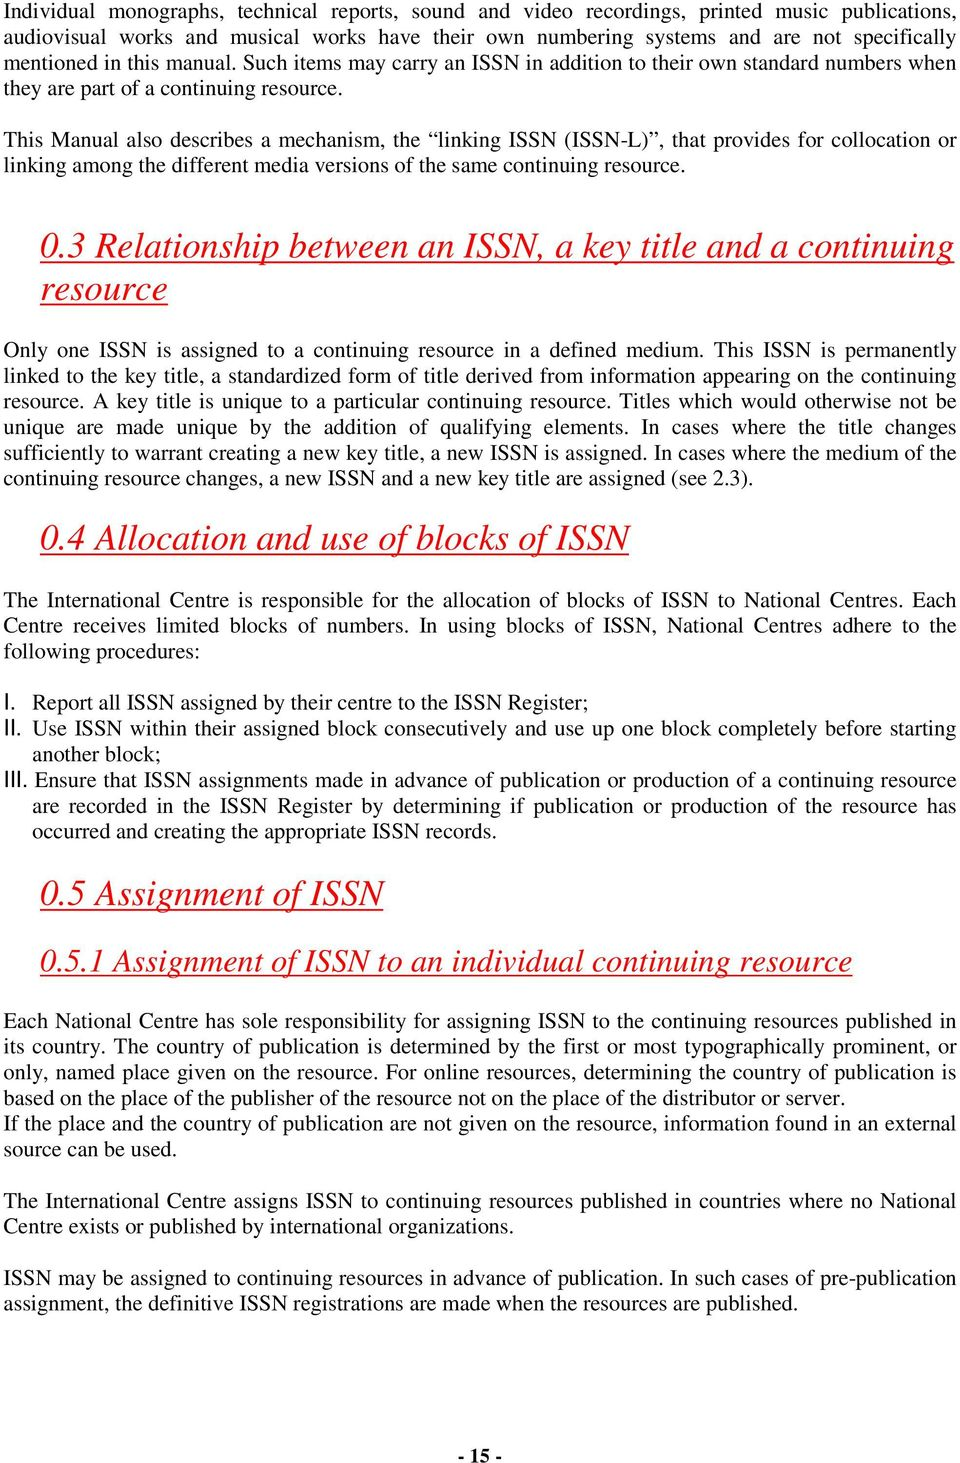 This Manual also describes a mechanism, the linking ISSN (ISSN-L), that provides for collocation or linking among the different media versions of the same continuing resource. 0.